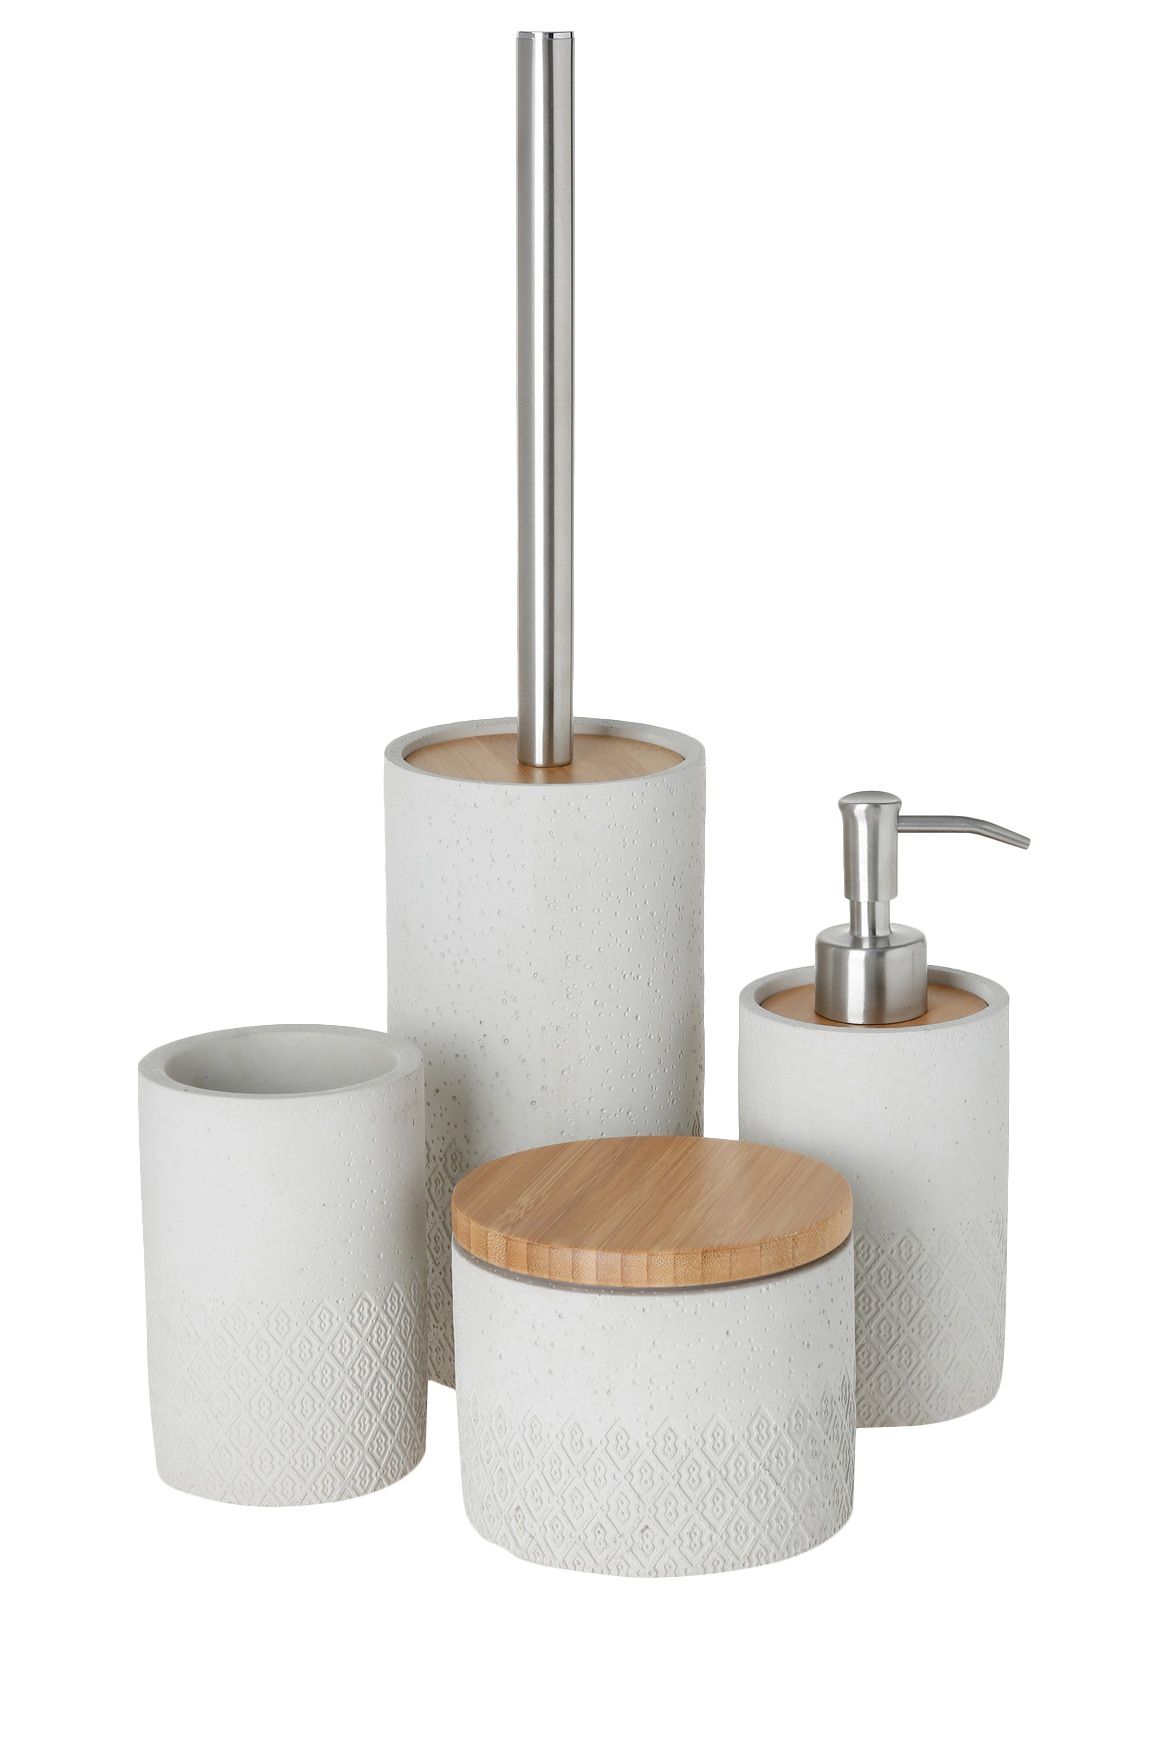 Australian house garden hahndorf bathroom accessories for Toilet accessories sale